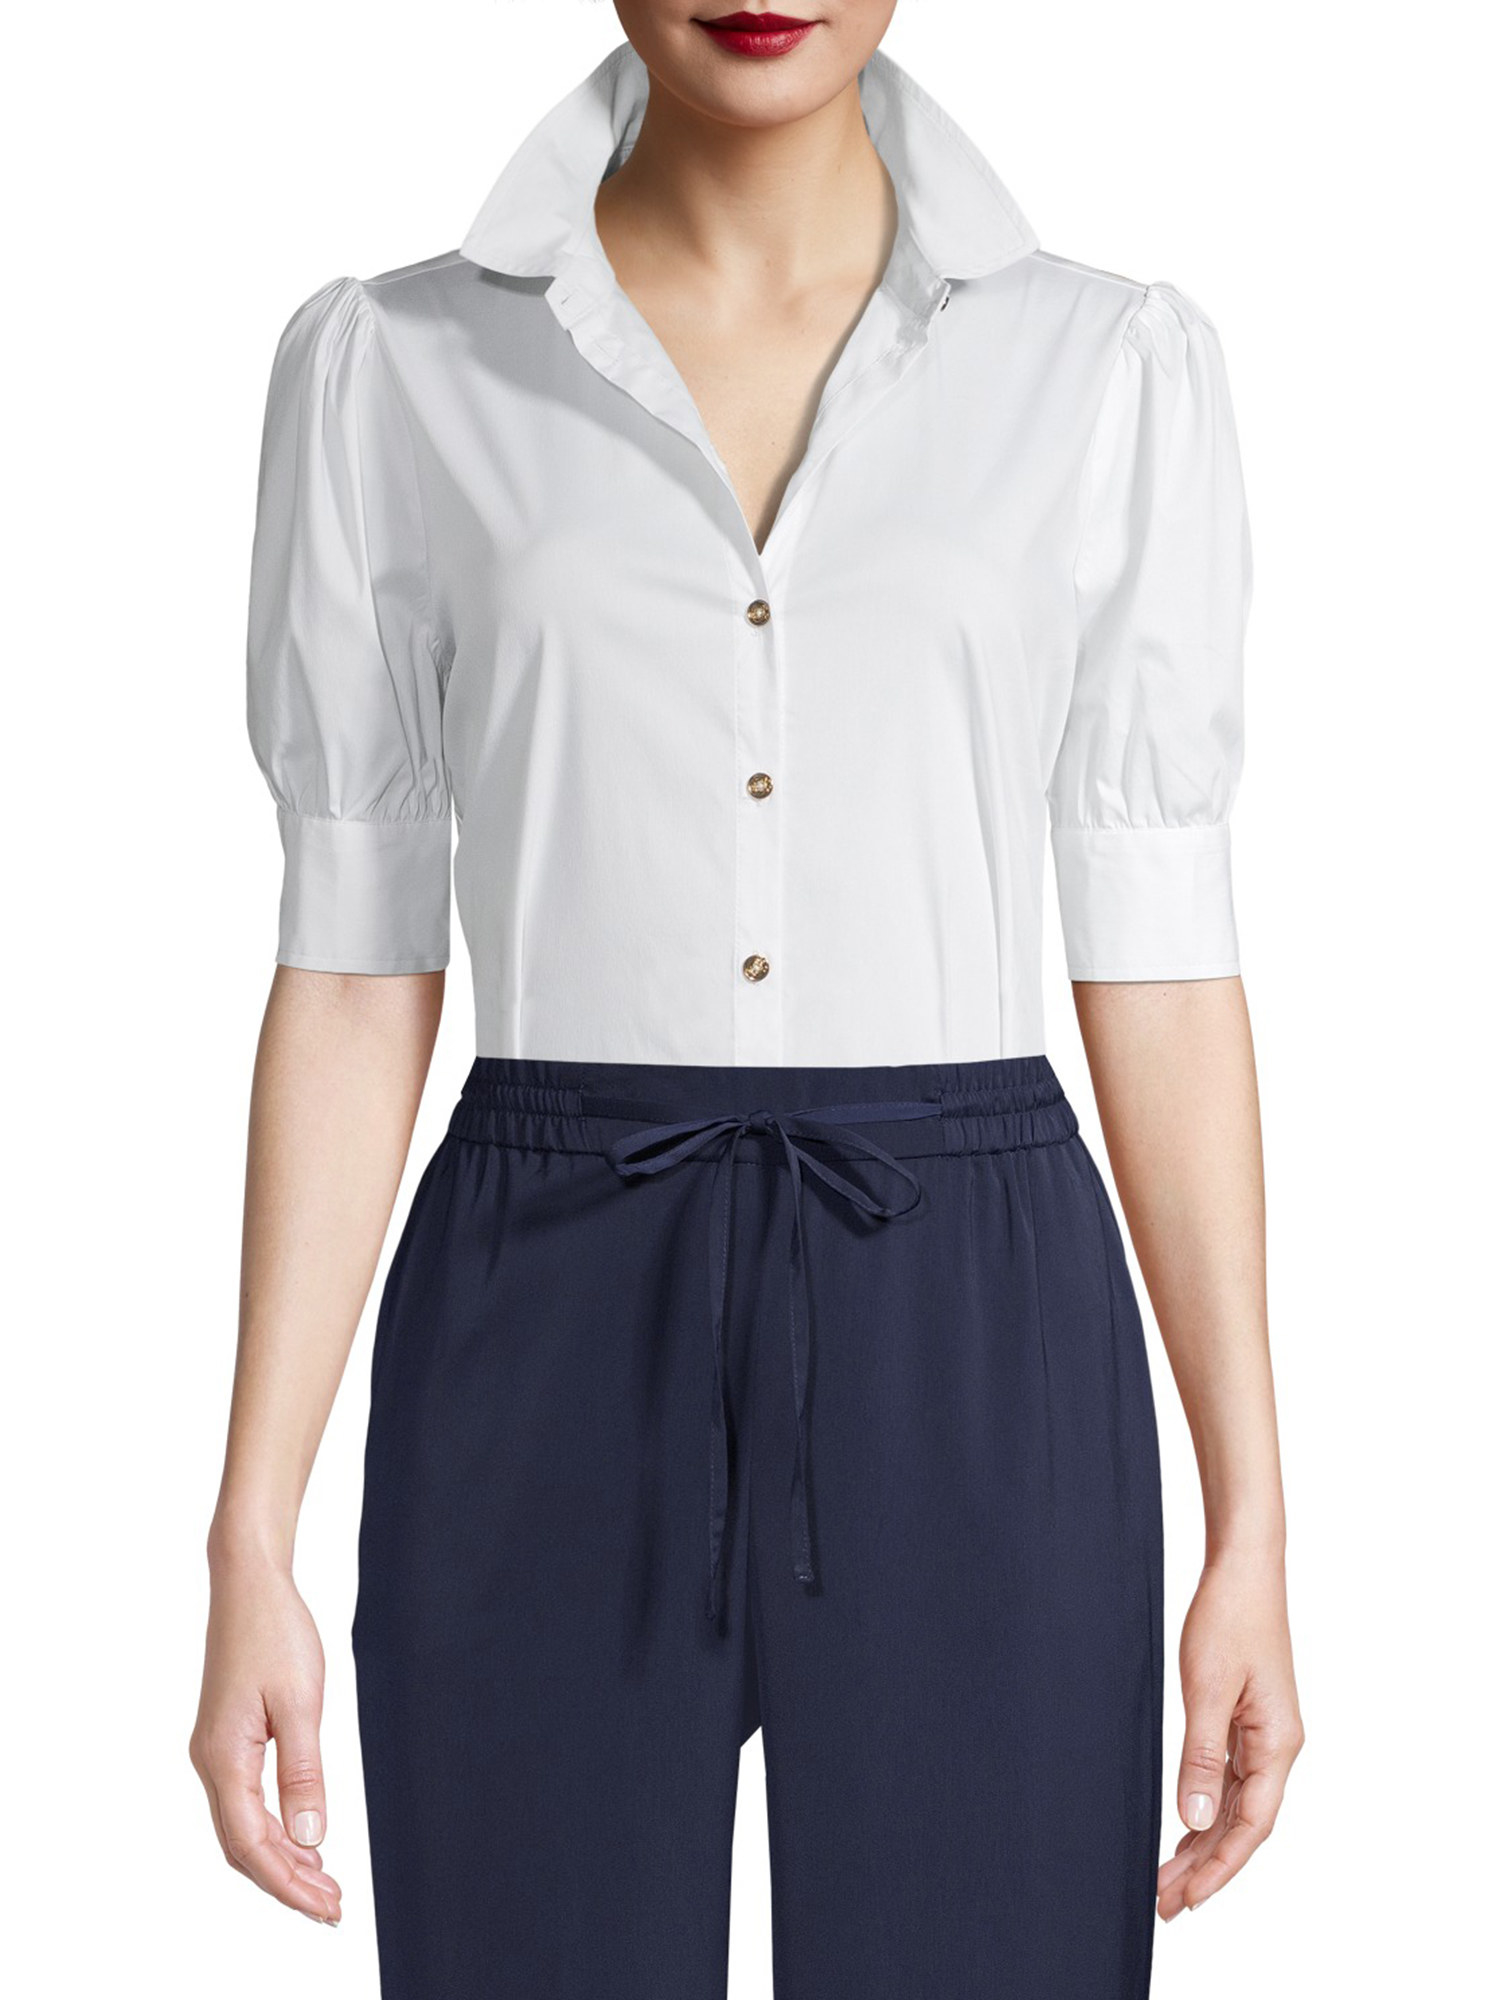 The white short sleeve buttoned blouse